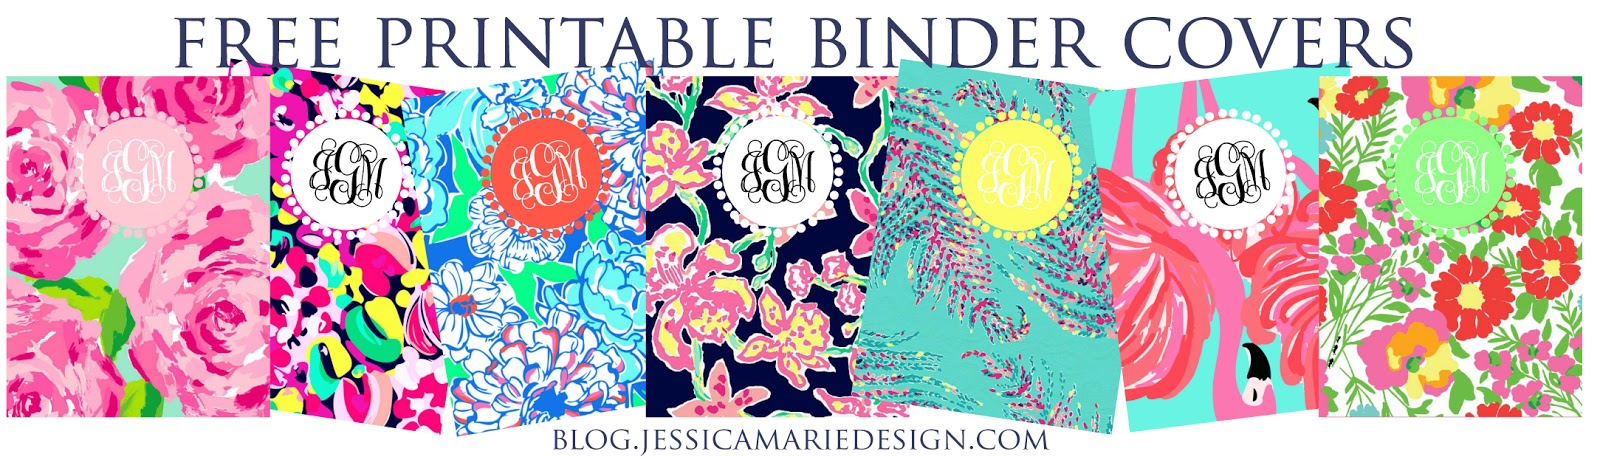 Lilly Pulitzer Binder Cover Templates | Jessica Marie Design Blog Preppy Printable Binder Covers